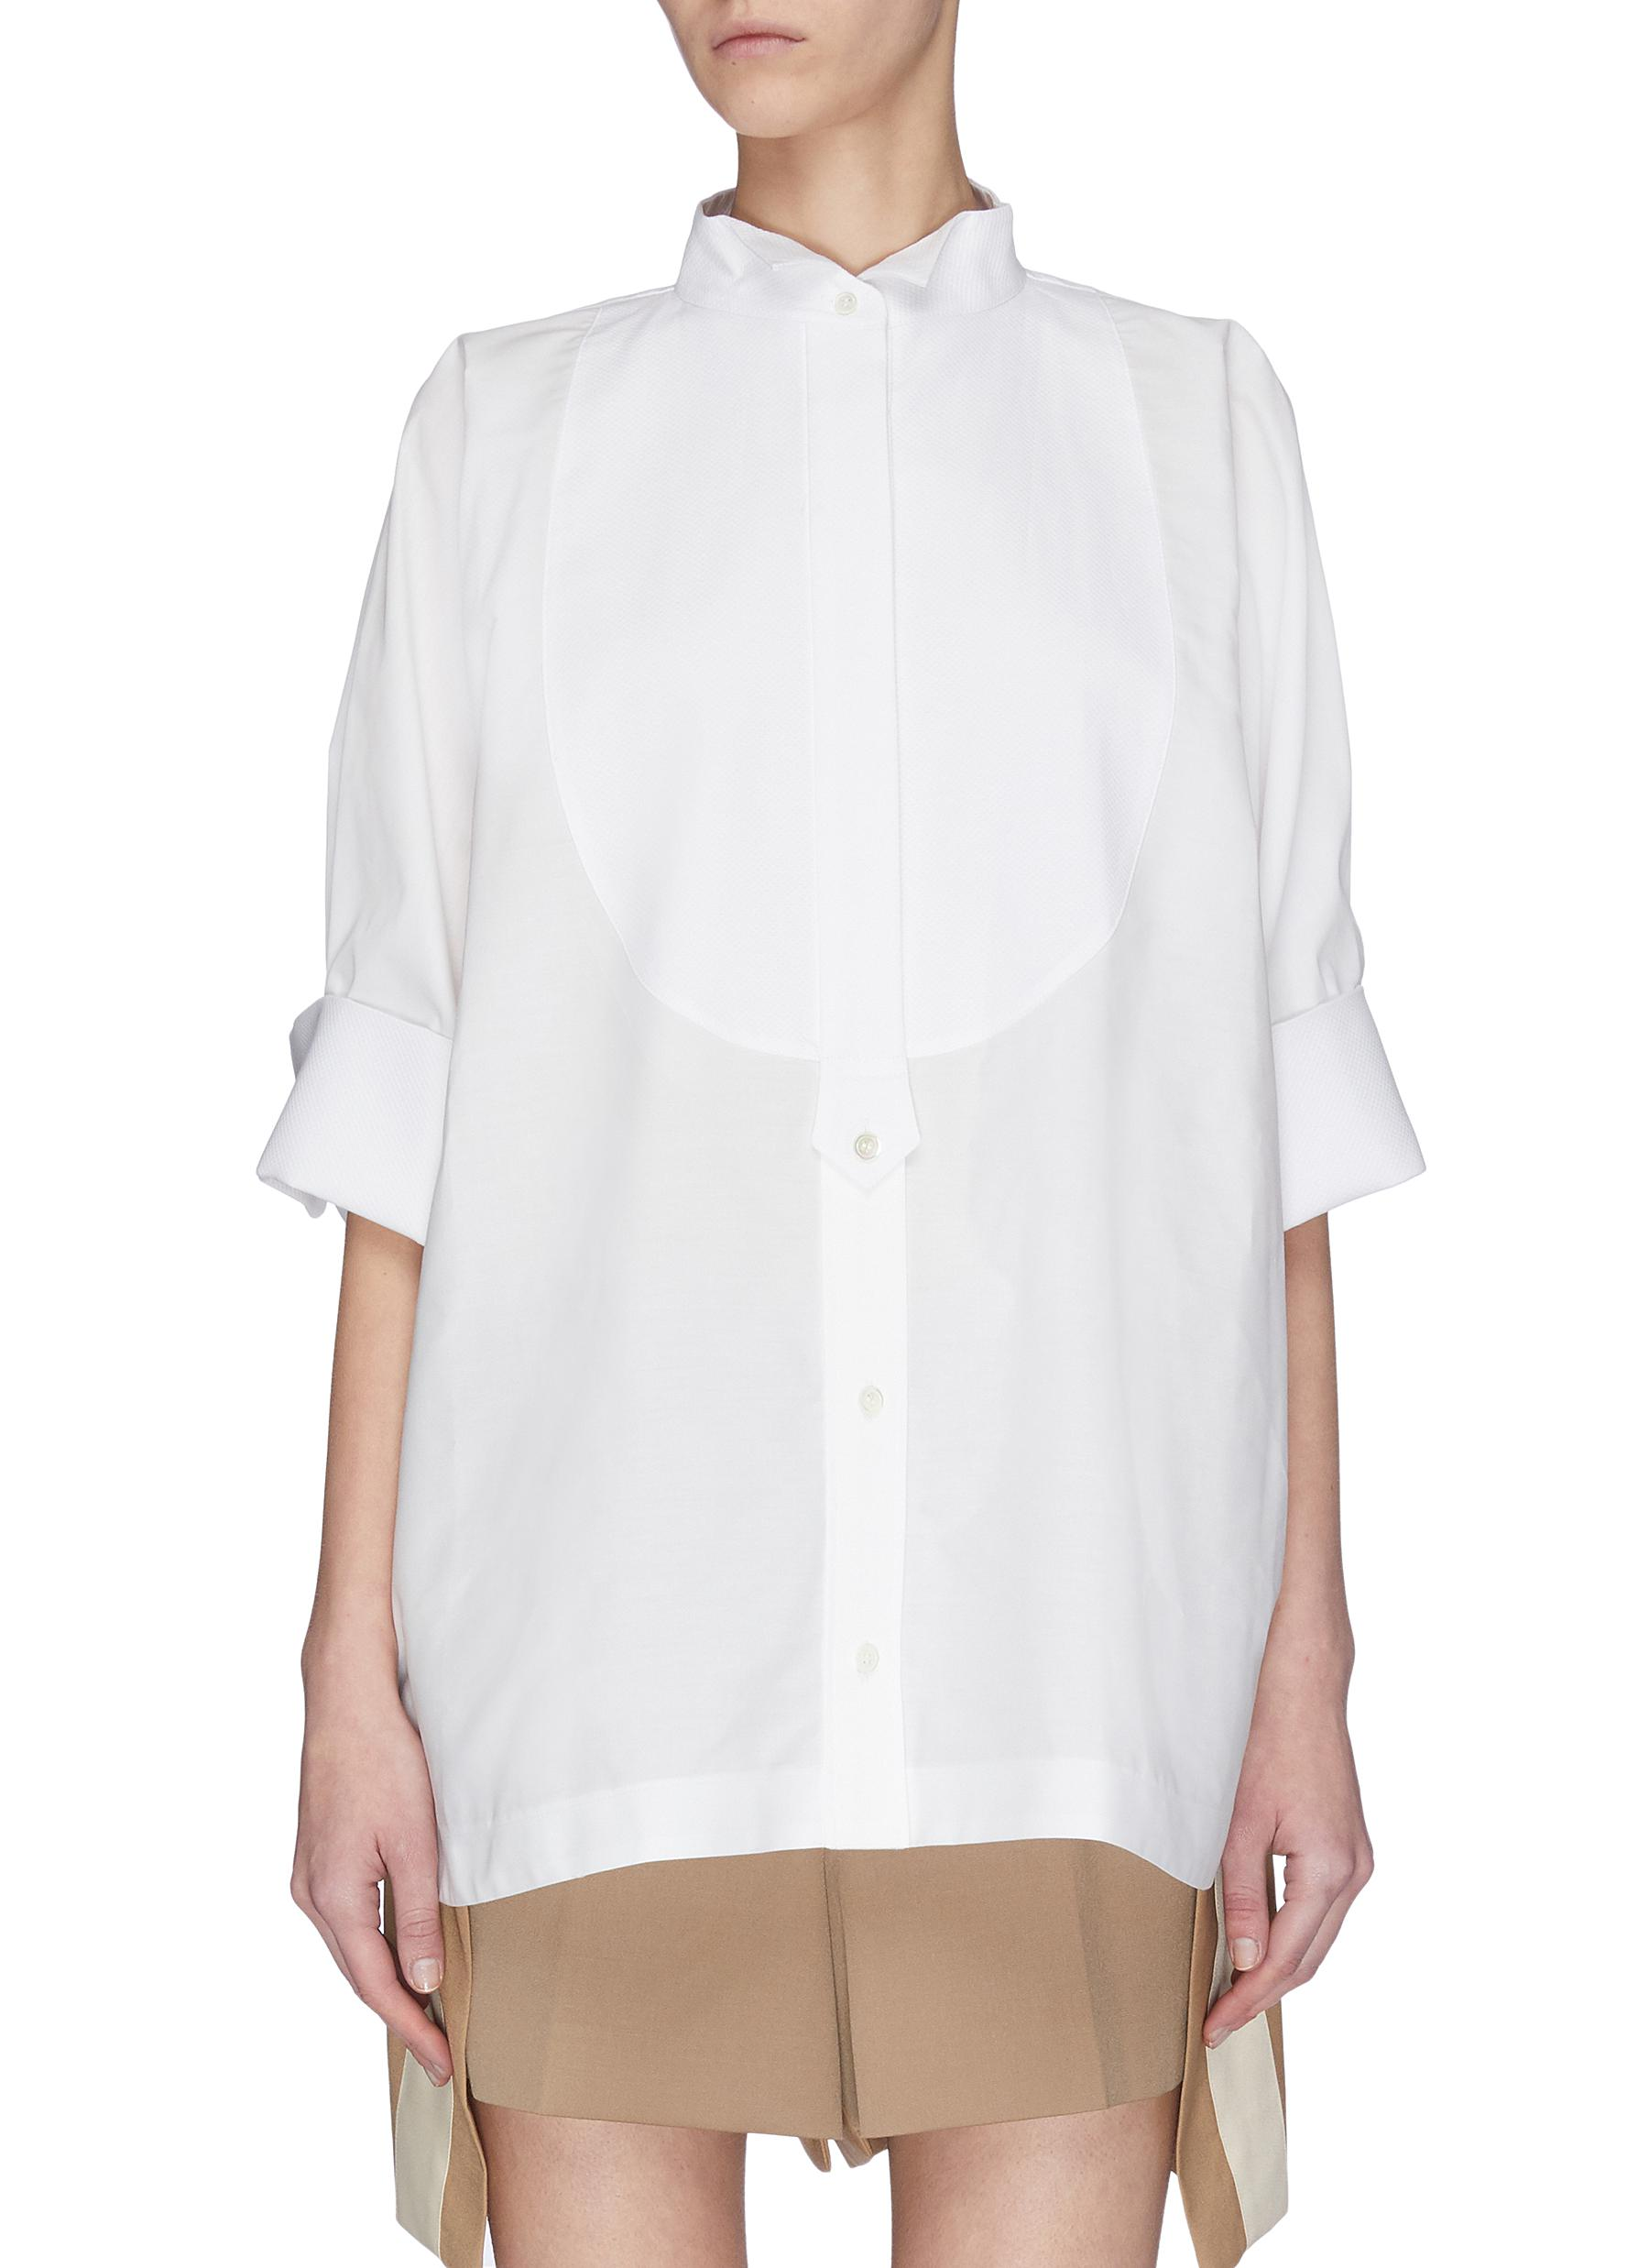 Buy Sacai Tops 'Bowtie' oversized shirt